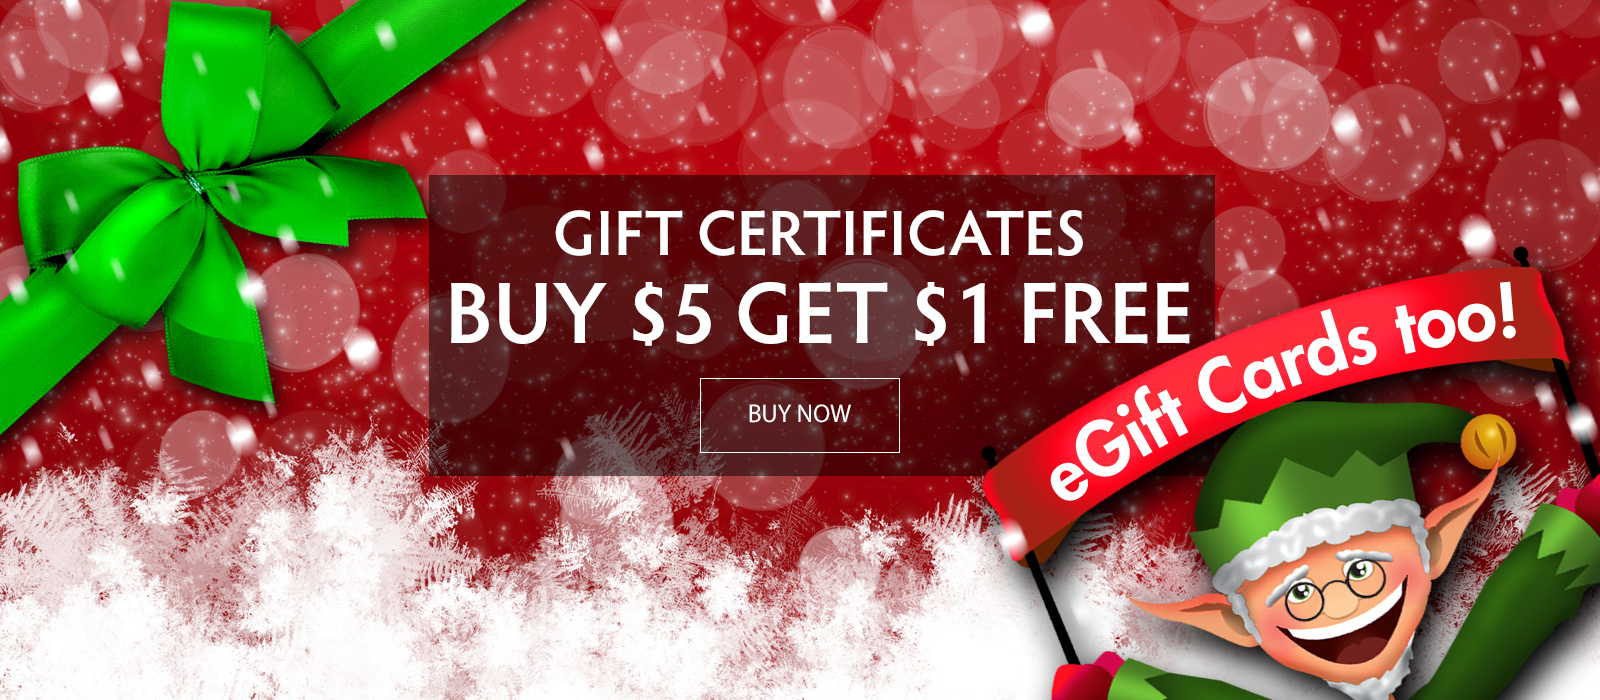 Holiday Gift Certificates - Buy $5 and Get $1 Free